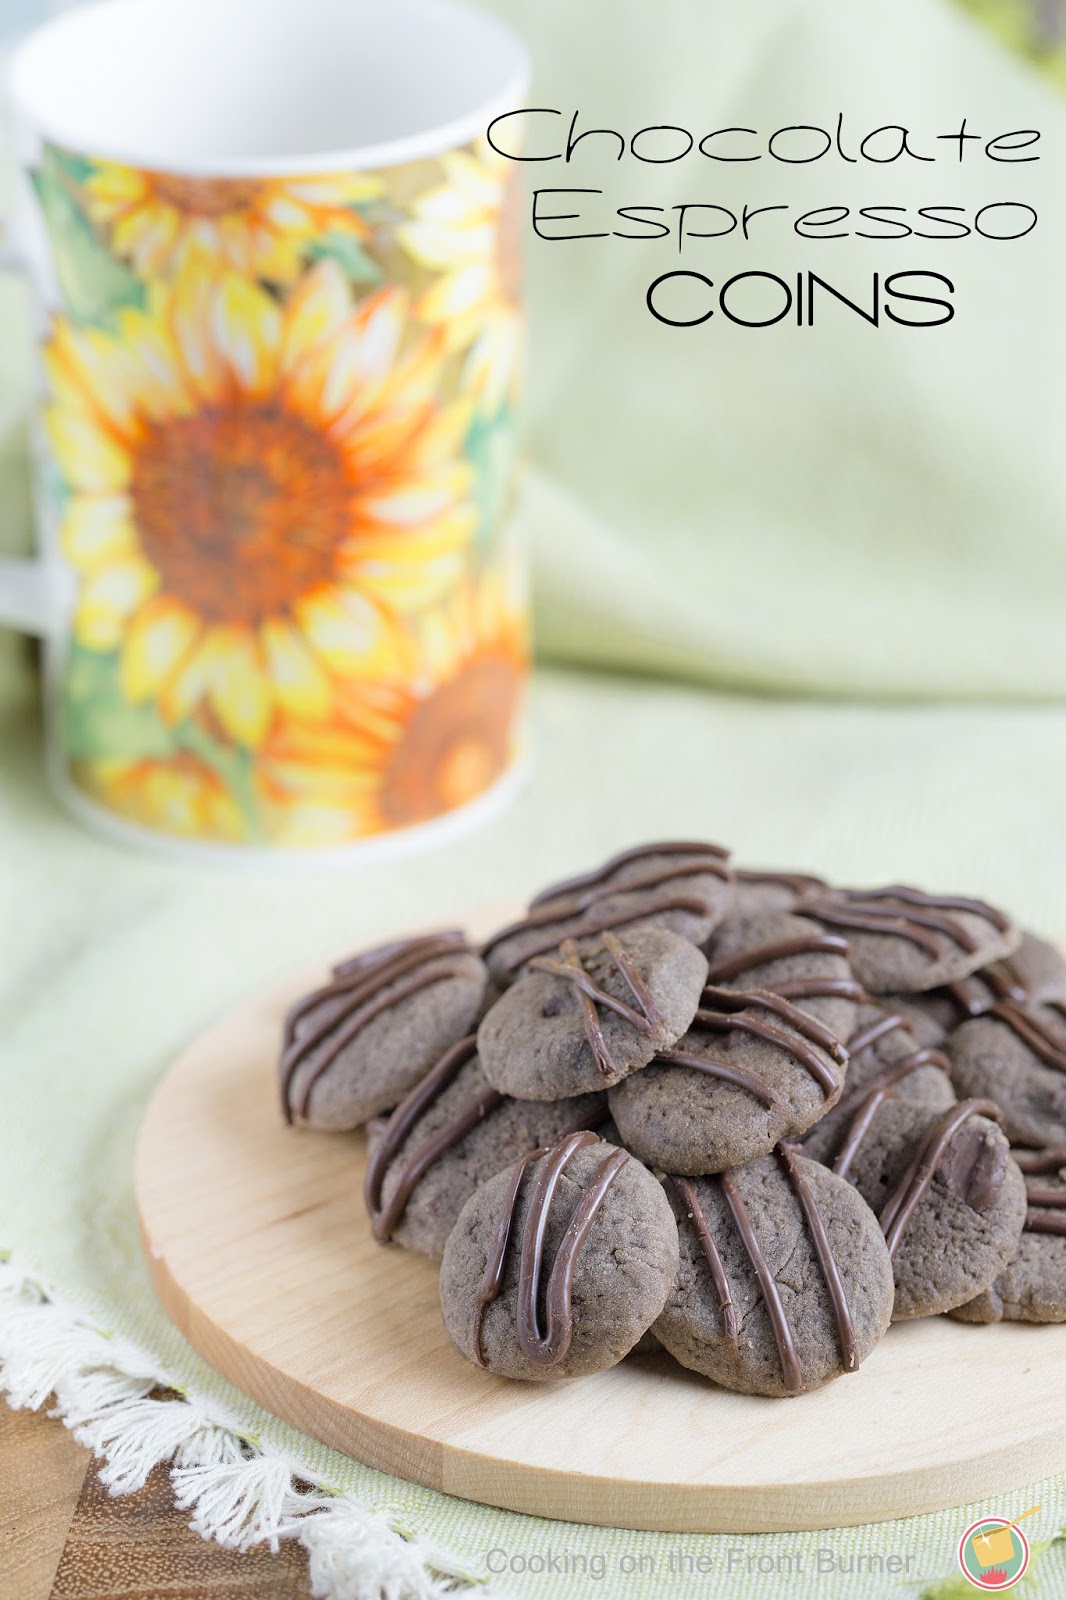 Chocolate Espresso Coins | Cooking on the Front Burner